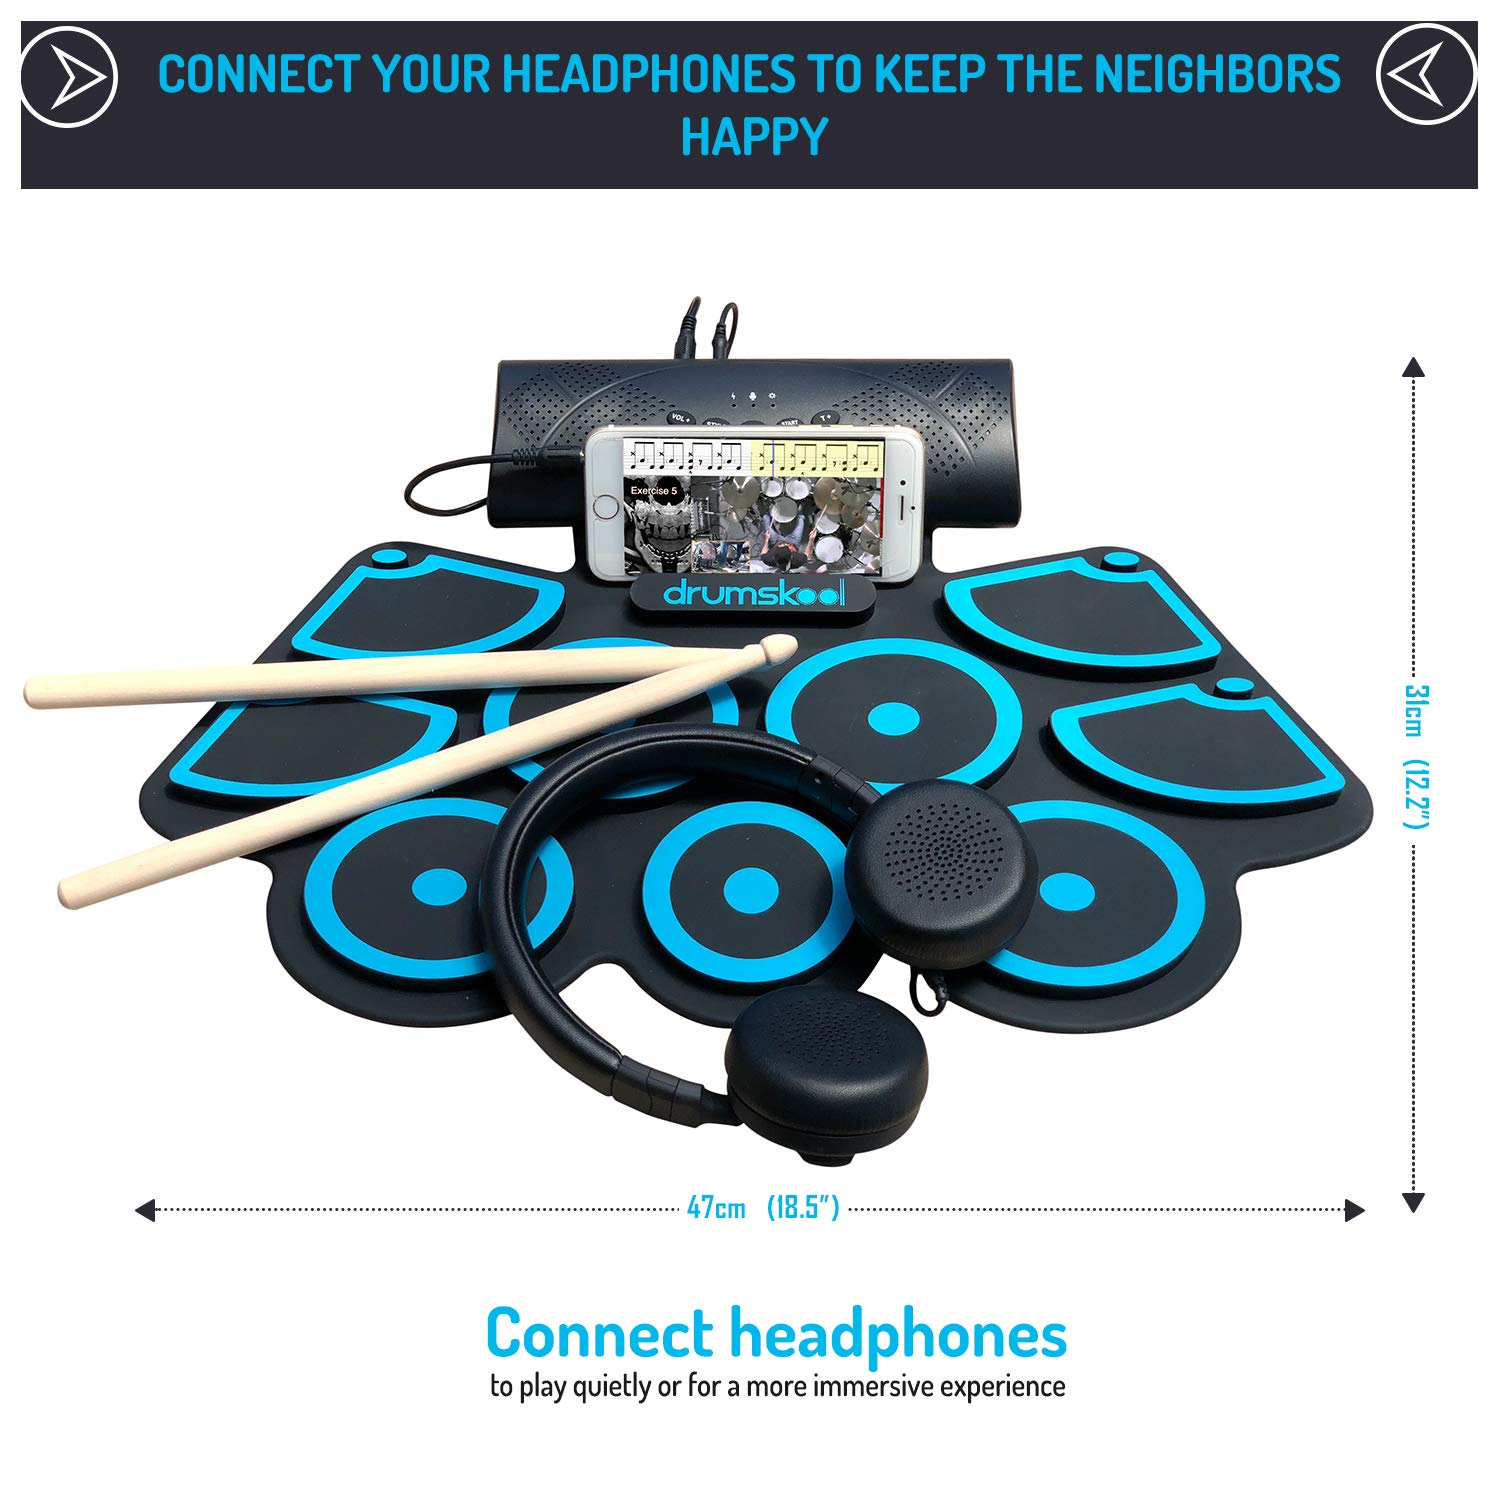 Drumskool Electronic Drum Set, MIDI Electric drum kit, Connect your phone to play along with included Drum Lessons, Speakers, Drum Pedals, Drum Sticks, 10 hours play time, Quickstart Guide by Drumskool (Image #3)